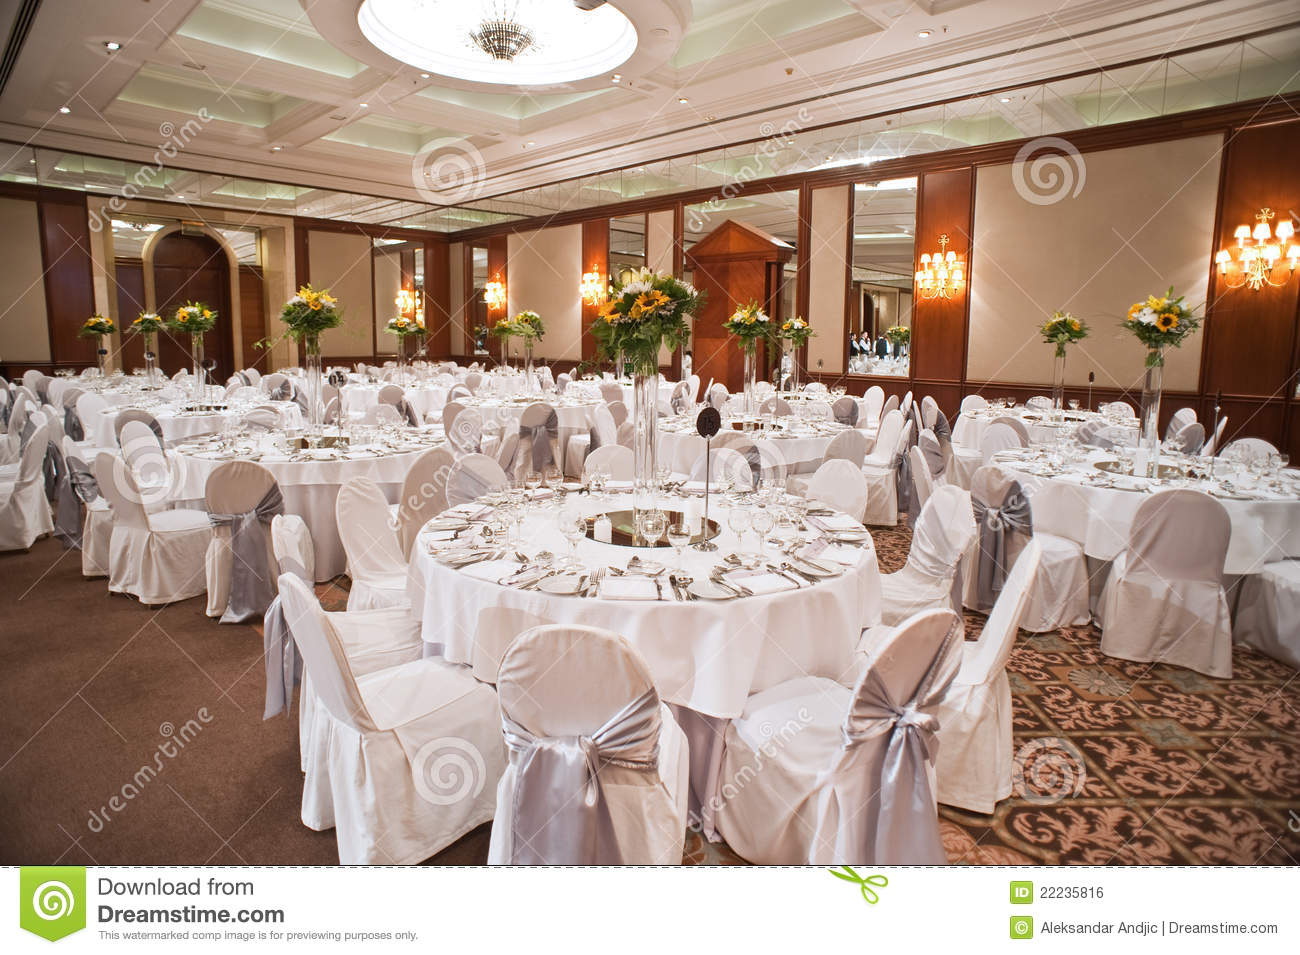 Beautifully decorated wedding hall with round tables at the hotel